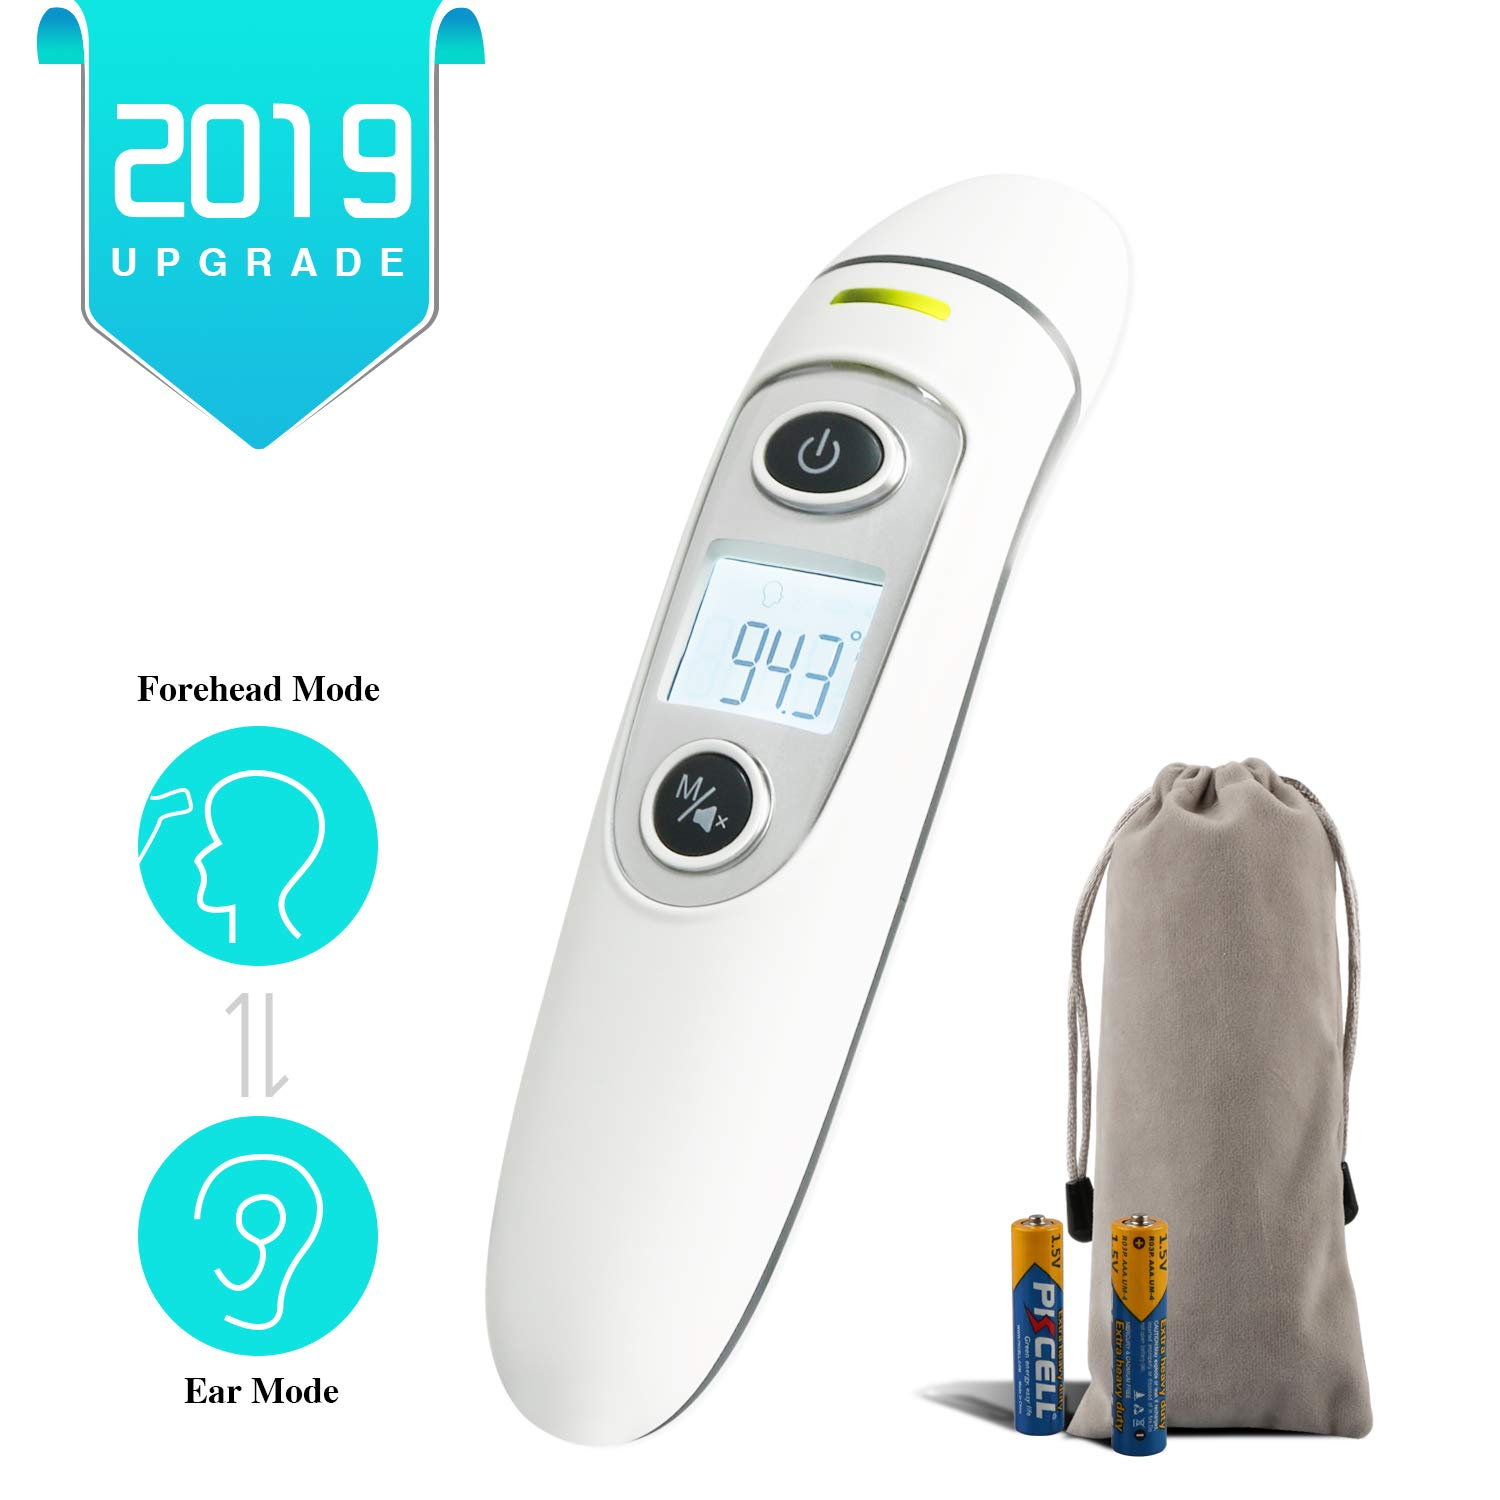 Baby Thermometer – Ear and Forehead, Digital Infrared Temporal Thermometer for Fever, Instant Accurate Reading for Baby Kids and Adults